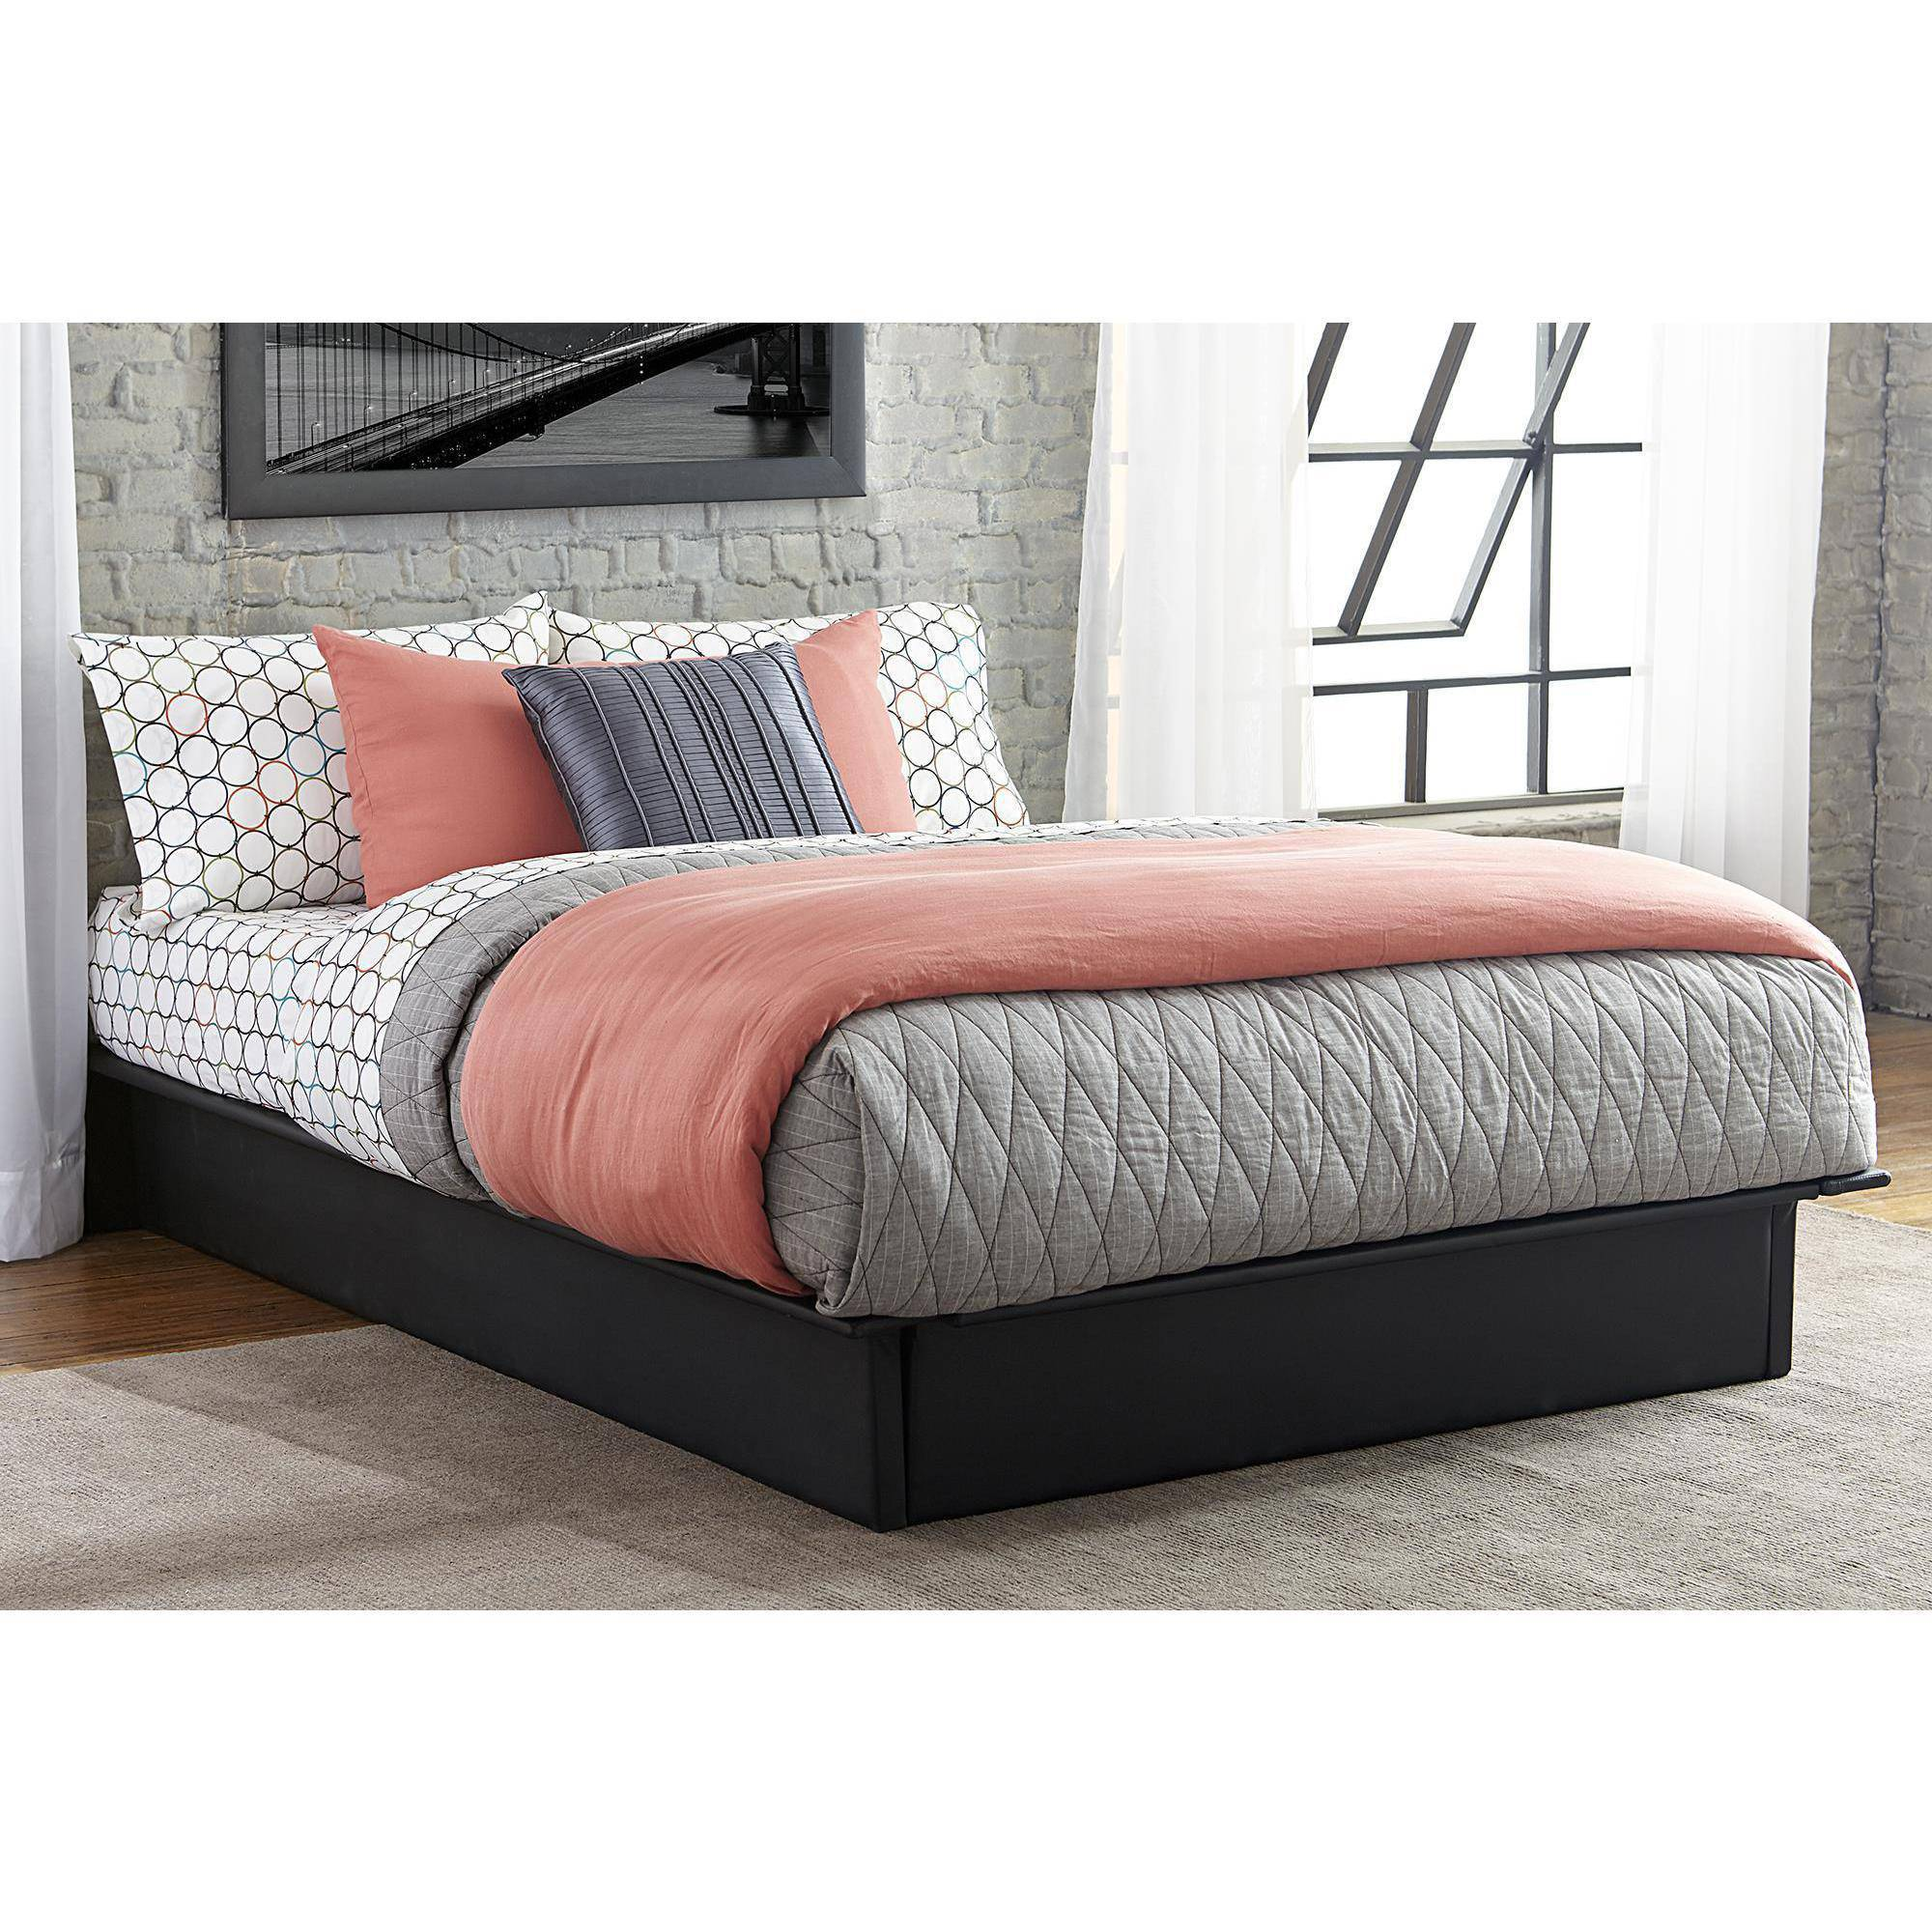 mavenupholsteredfauxleatherplatformbedblackmultiple. maven upholstered faux leather platform bed black multiple sizes